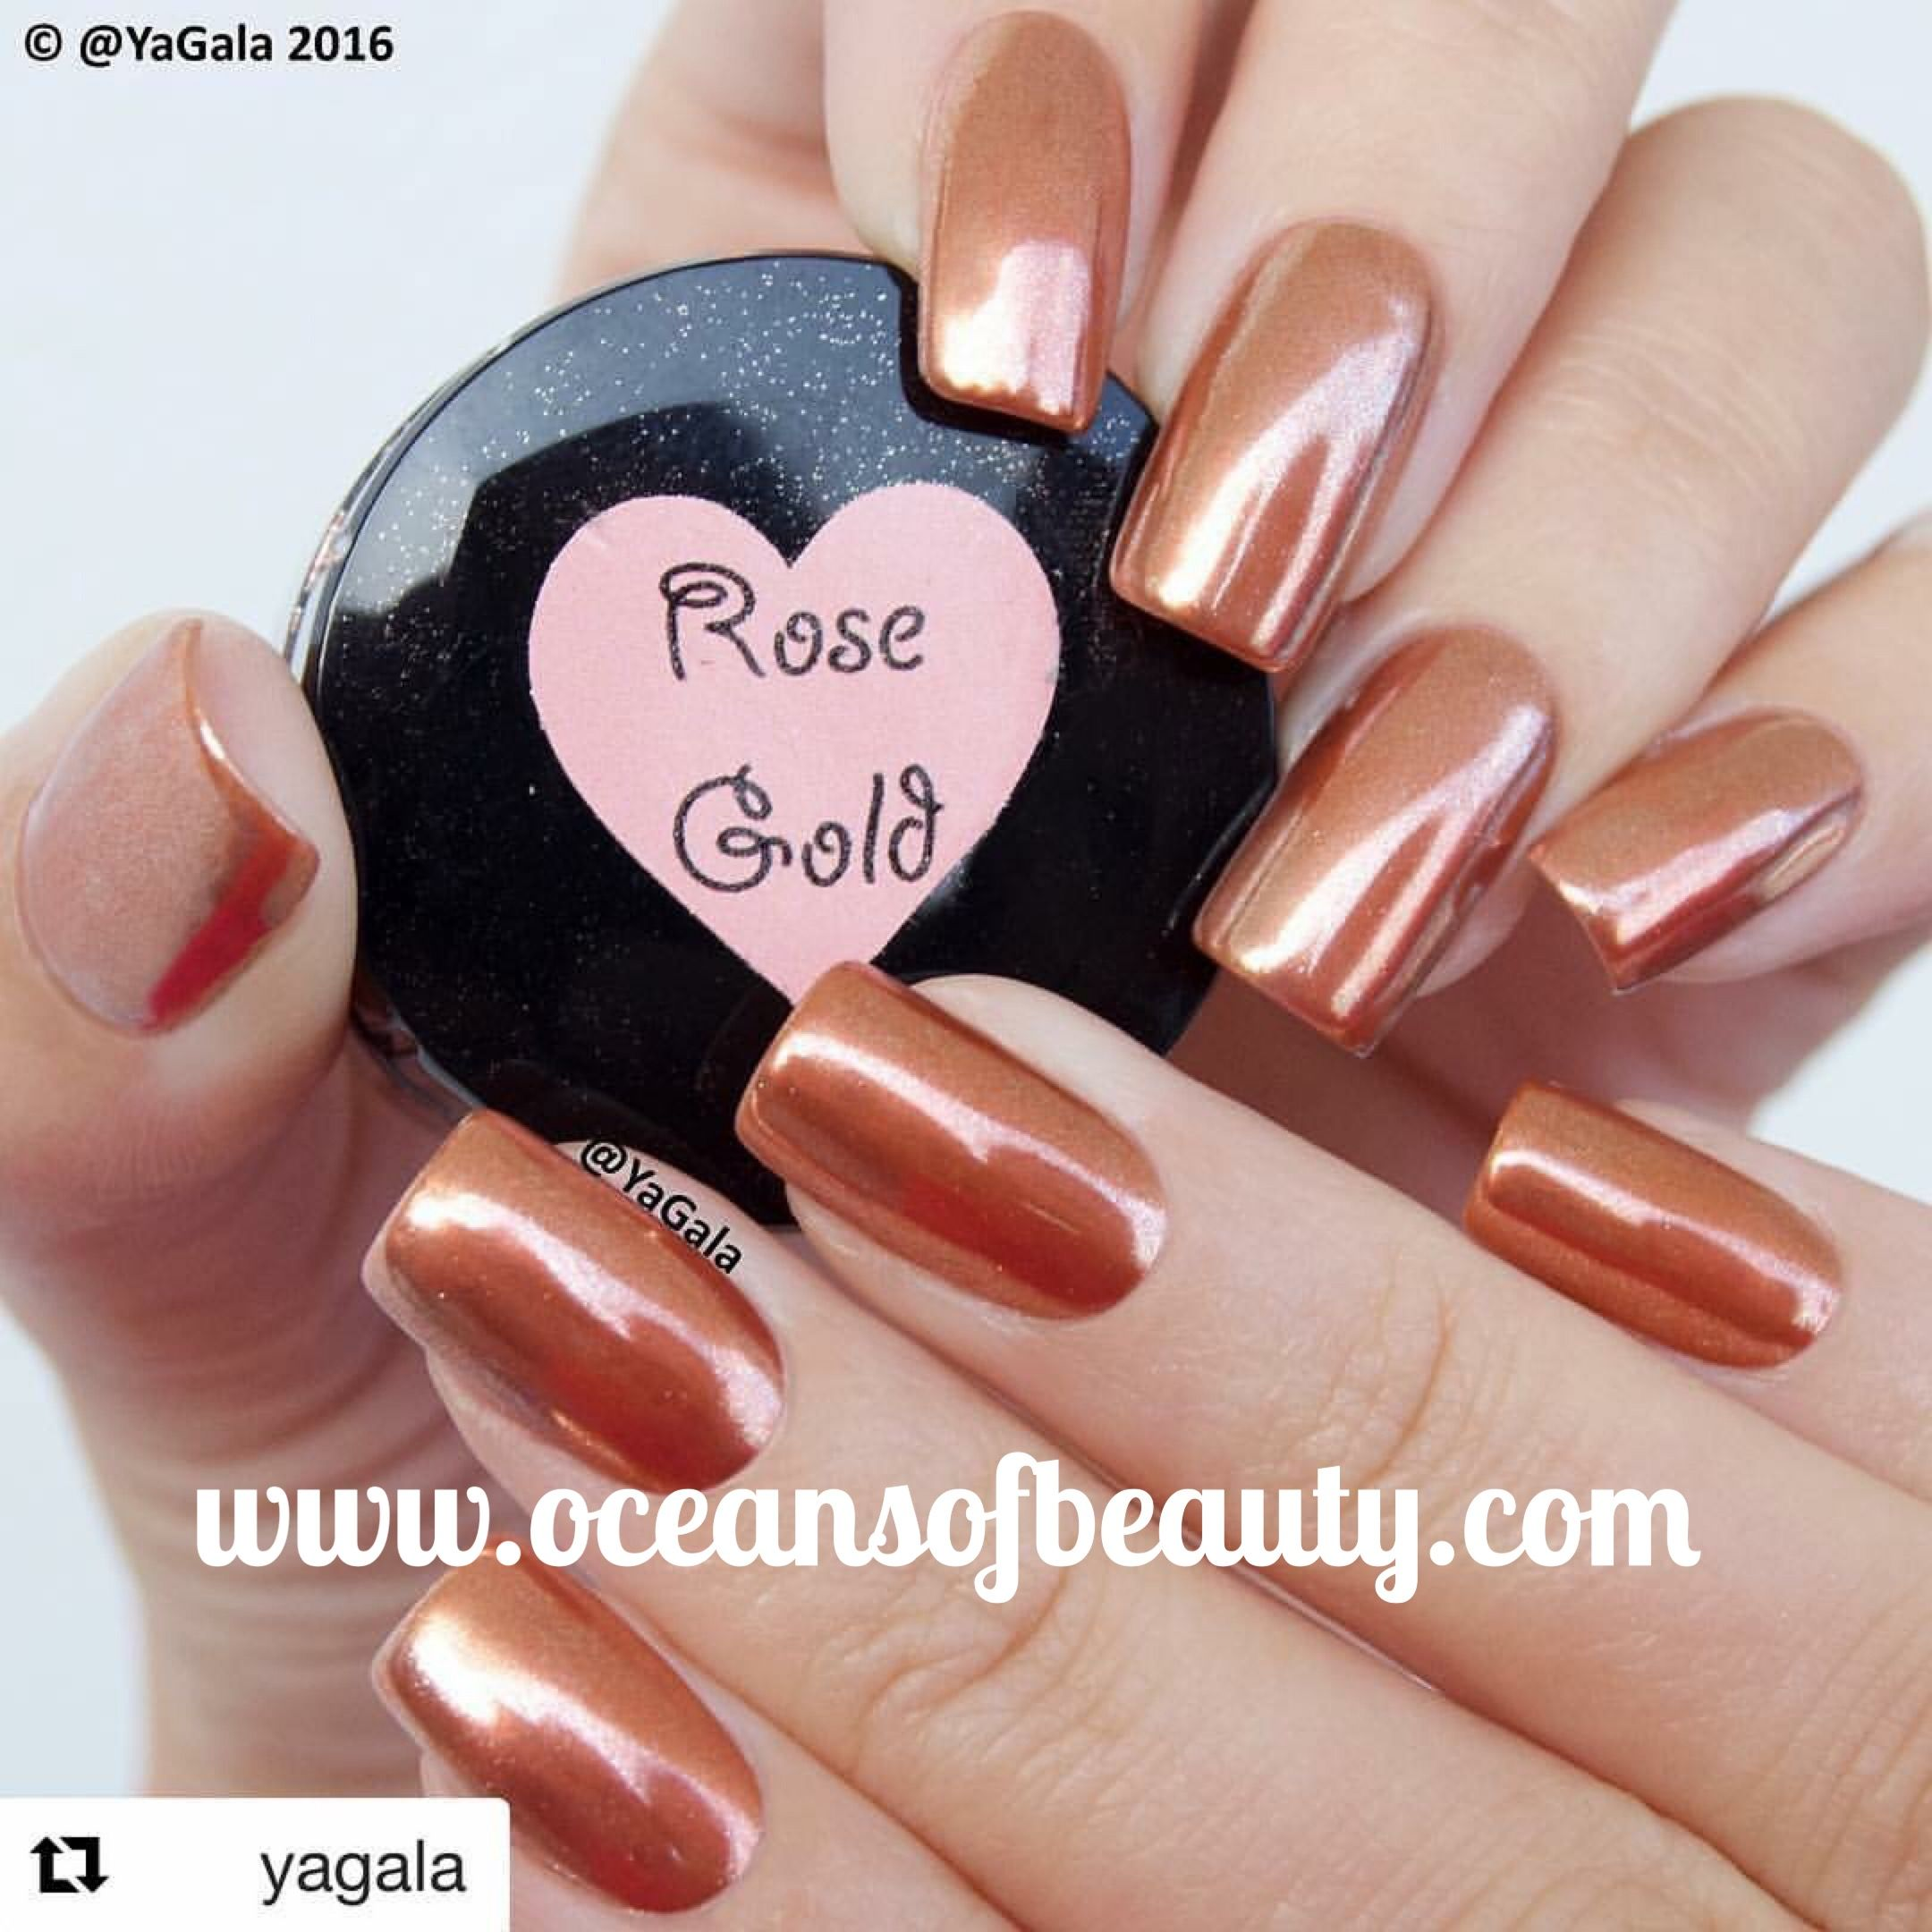 Rose Gold Powder from OceansofBeauty.com done by yagala from ...